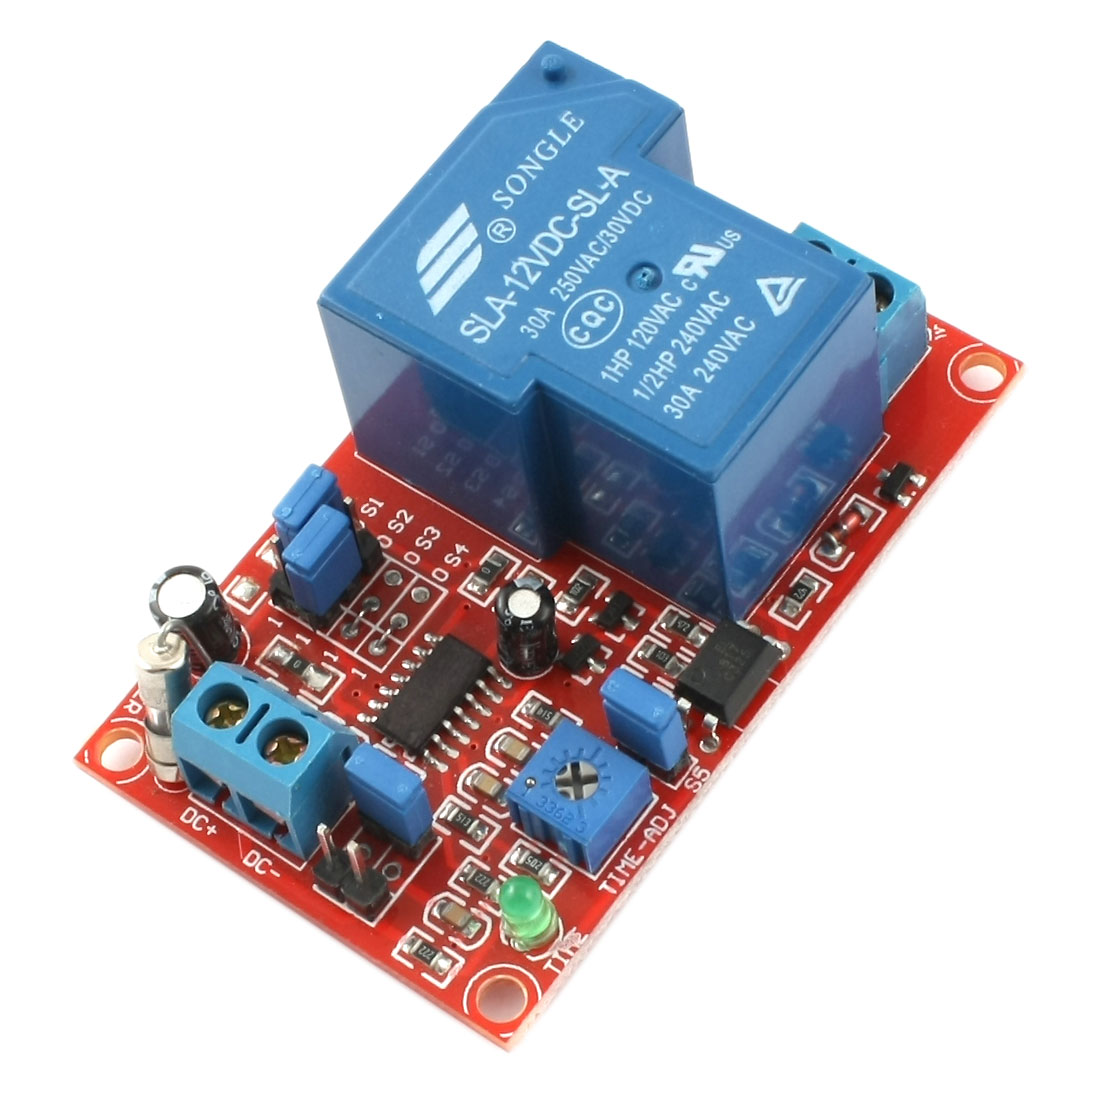 SLA-12VDC-SL-A 1 Way High/Low Level Trigger Delay Time Relay Module DC12V 30A